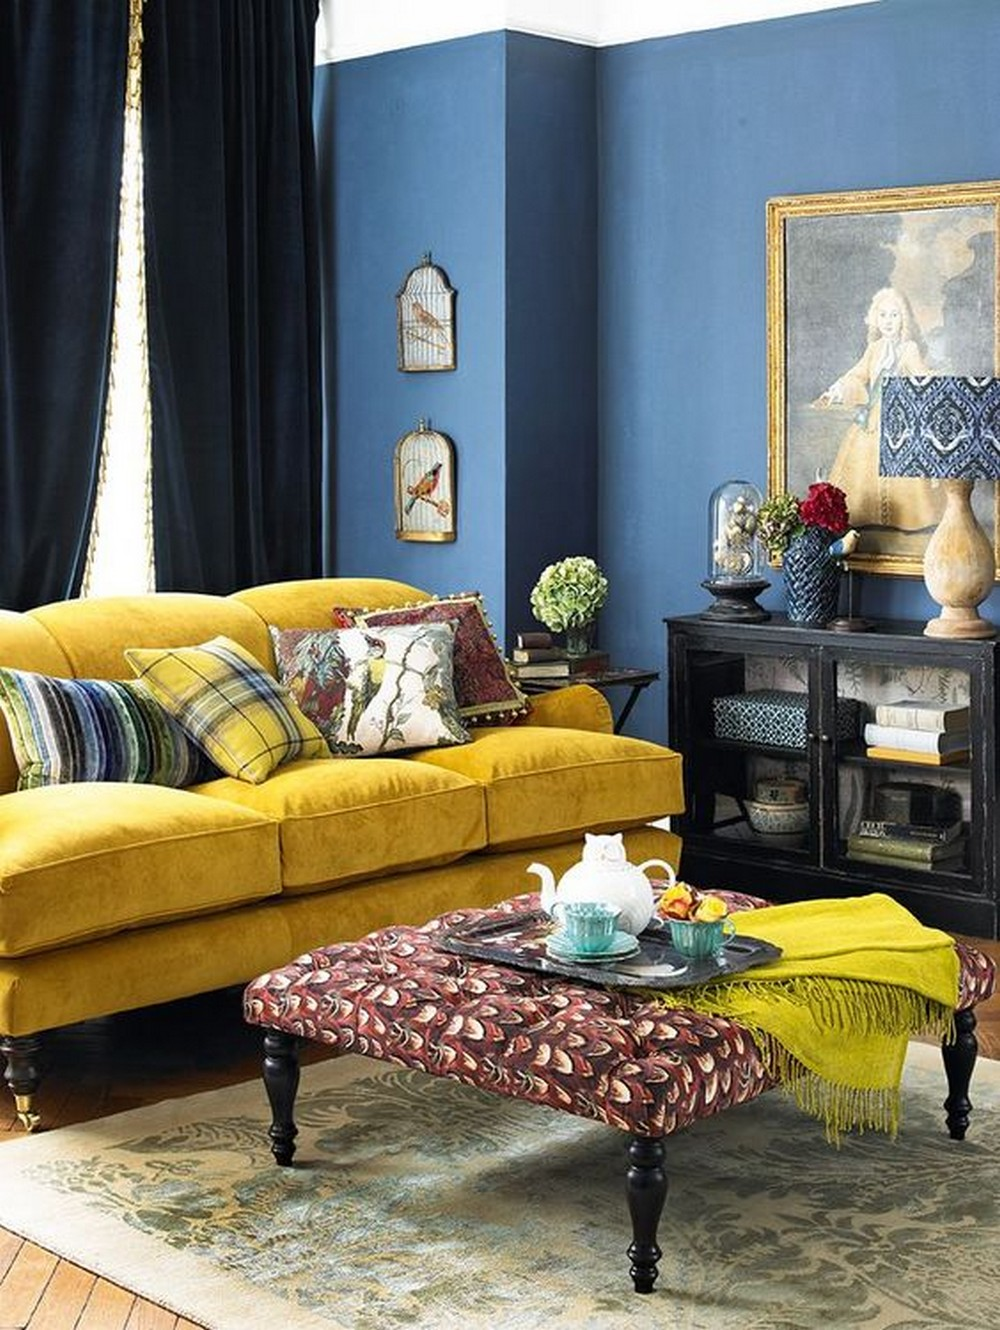 Yellow Mellow: feel inspired by this 2019 interior design trend Yellow Mellow Yellow Mellow: feel inspired by this 2019 interior design trend 64b694b9c305d2461ec975499e4a23e1